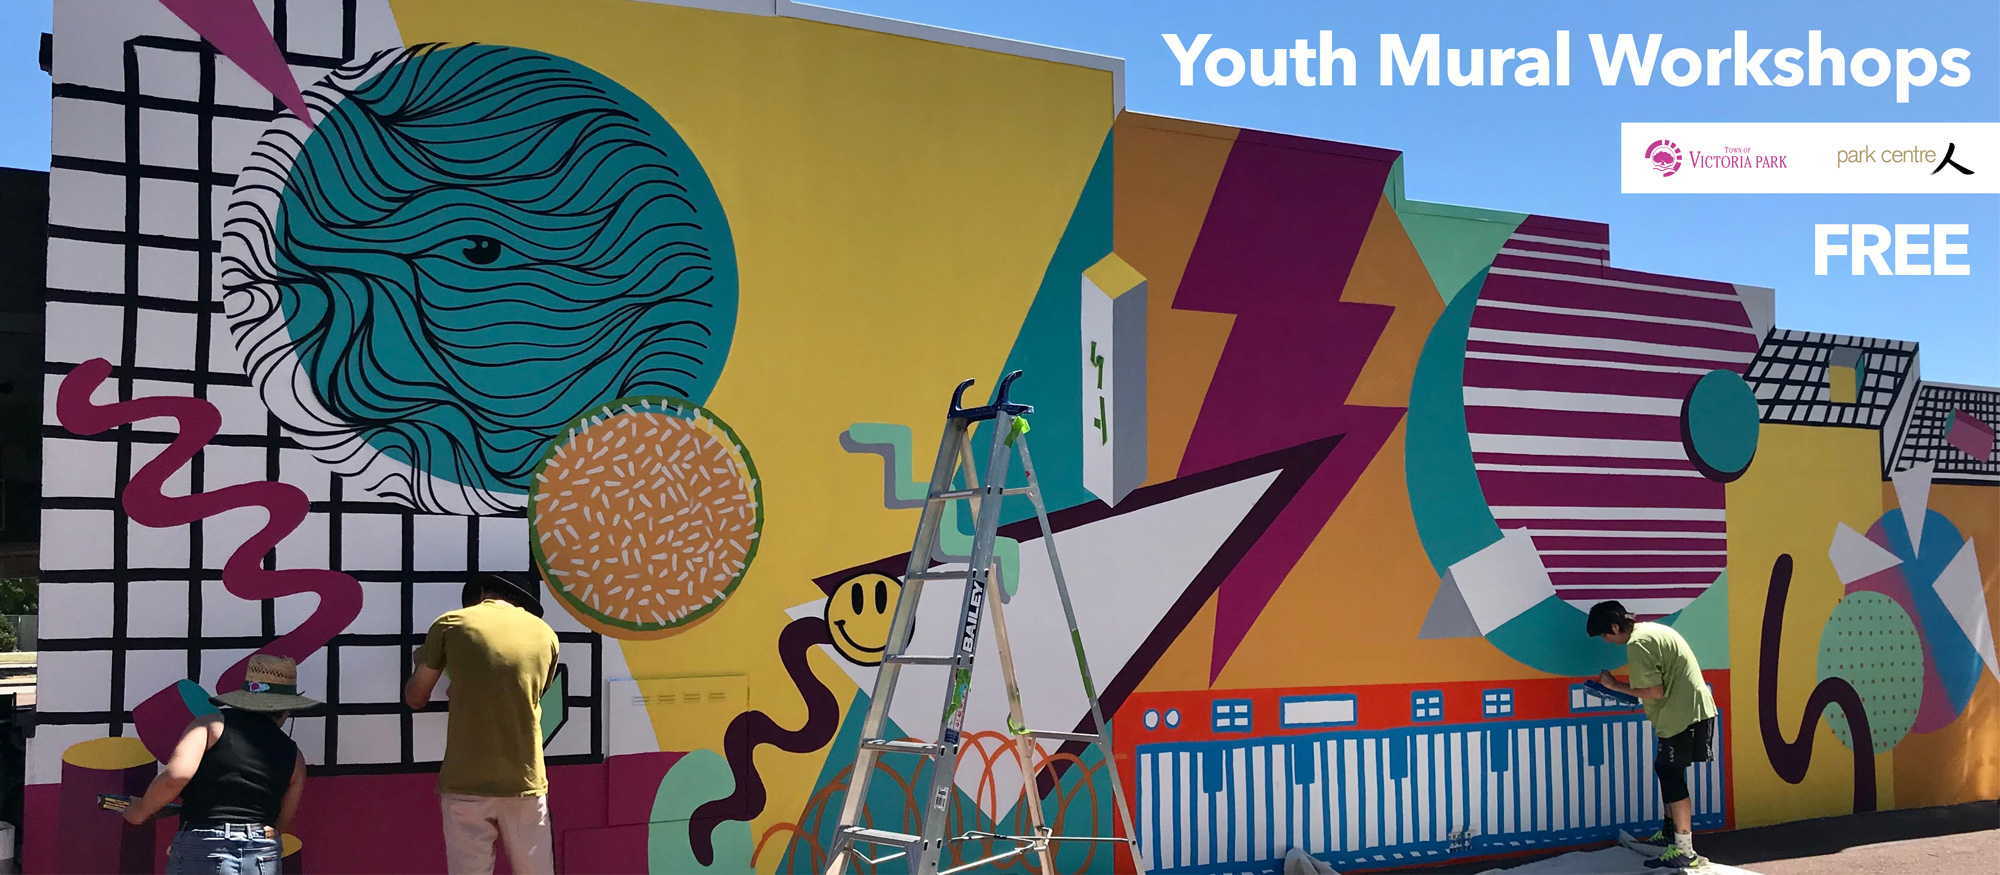 Youth-Mural-Workshop-banner-2021